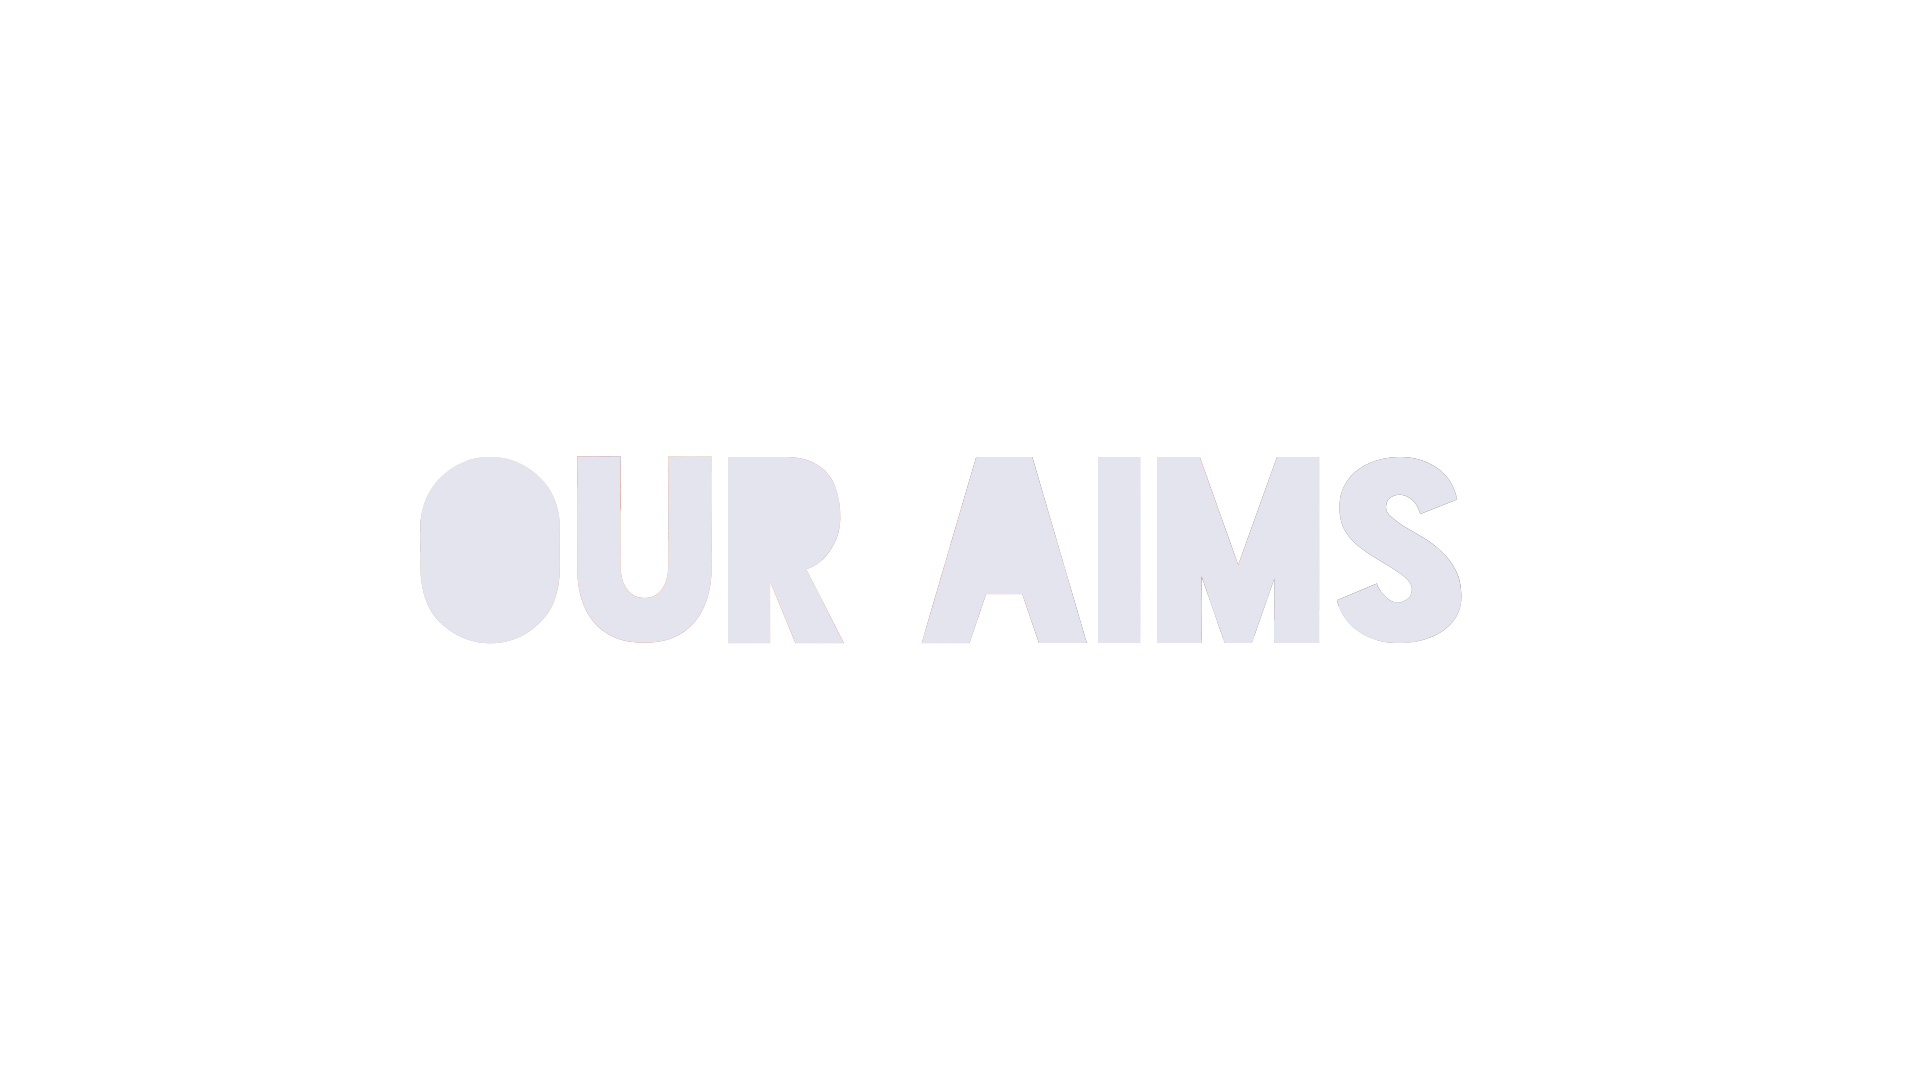 Aims4_Font.png